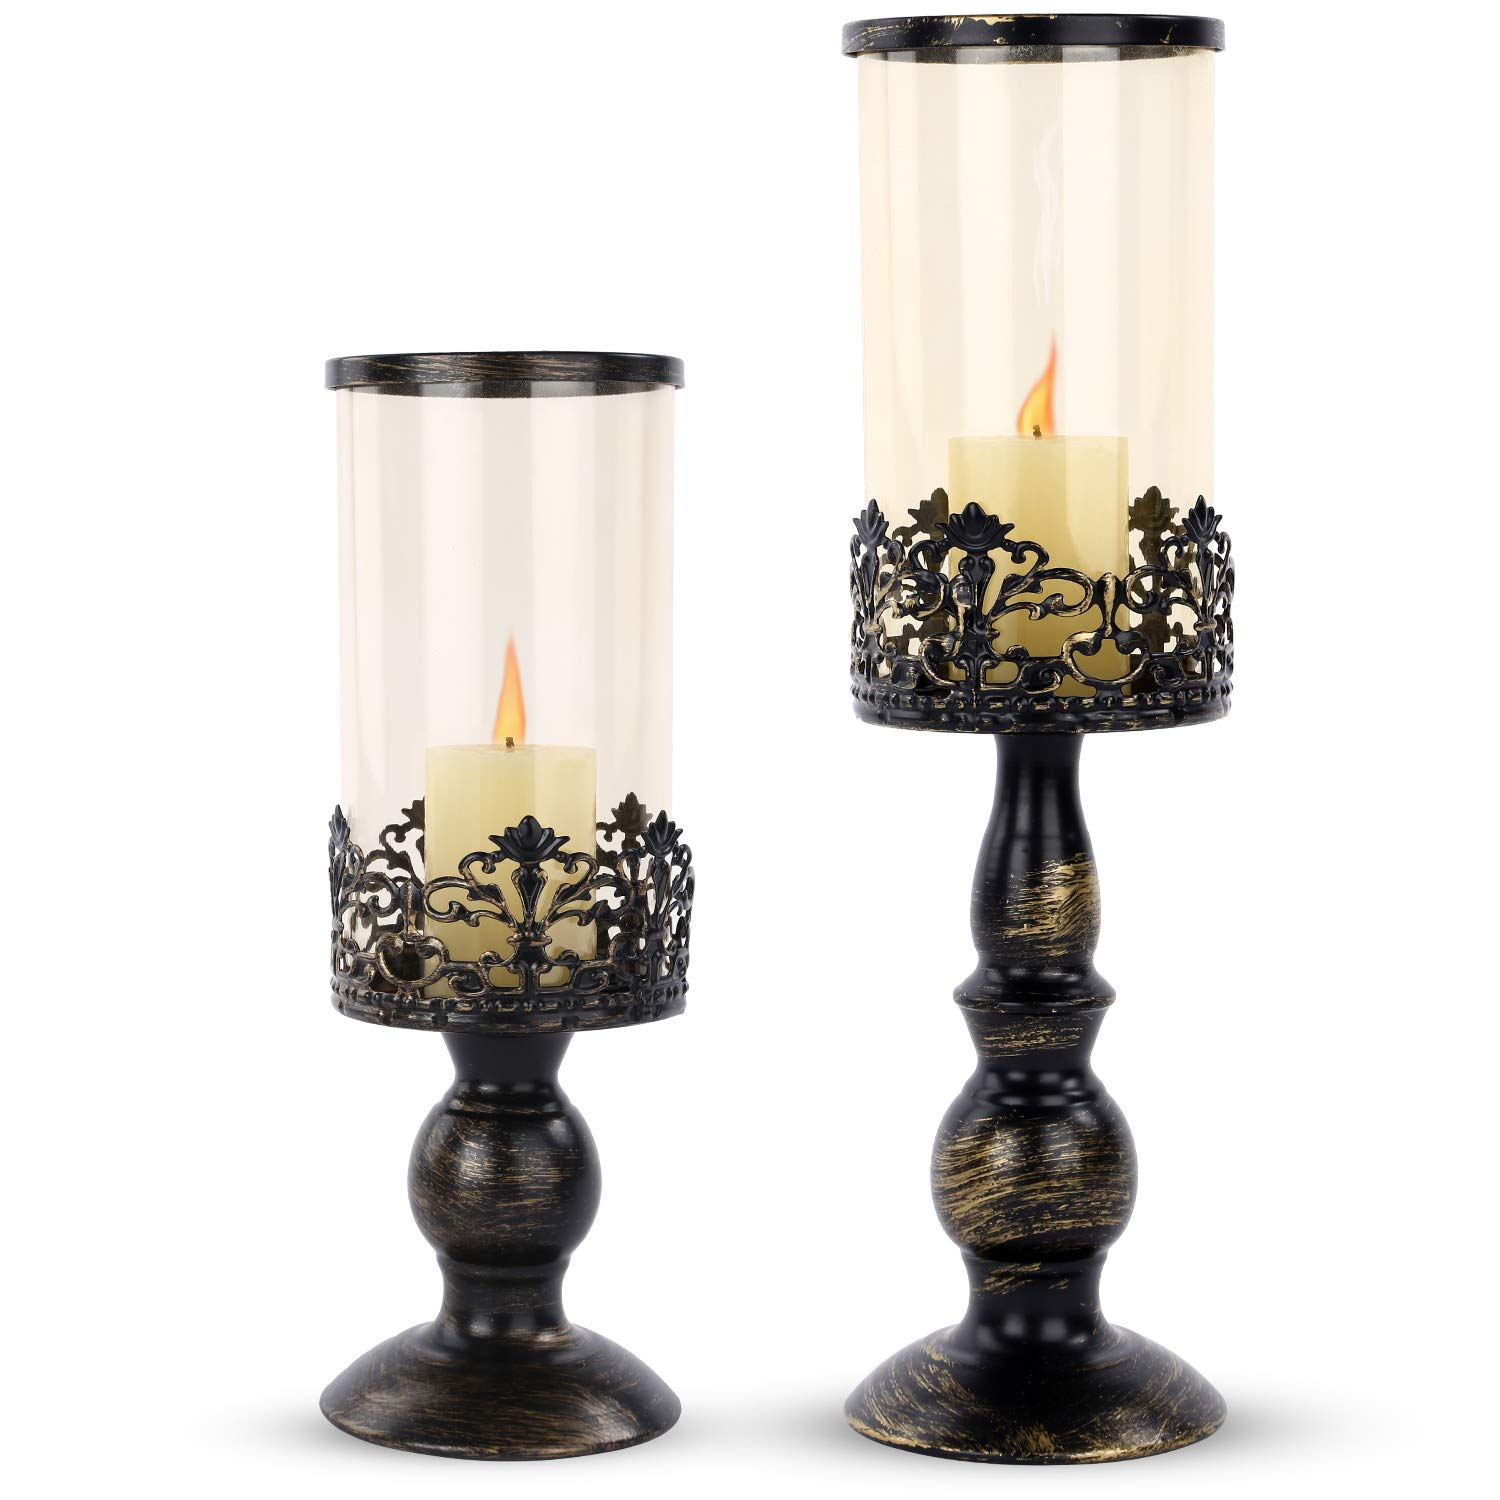 SMEL 2pcs Creative European Candle Holders Candlelight Dinner Wedding Romantic Candlesticks Different Size Household Furnishing Articles Iron Glass for Home Decor.(12'59,14'96)